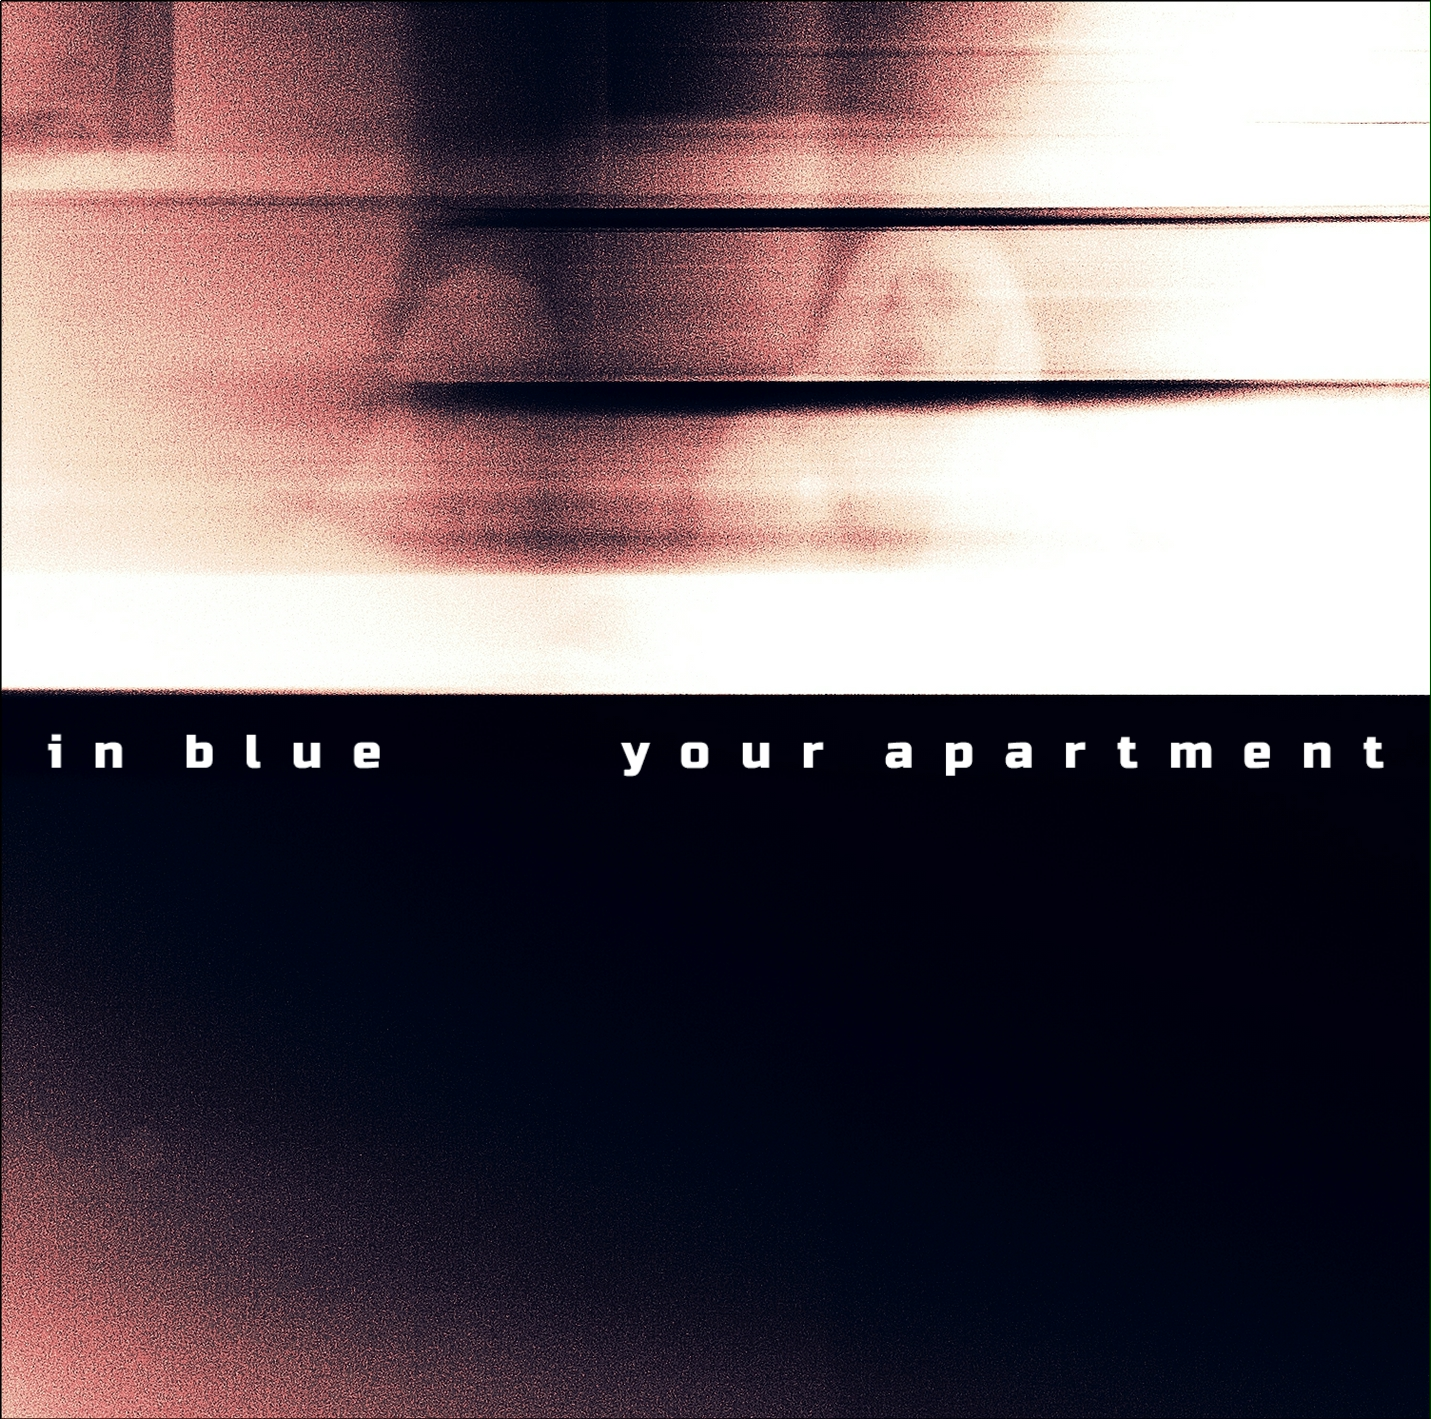 Your Apartment (Single)